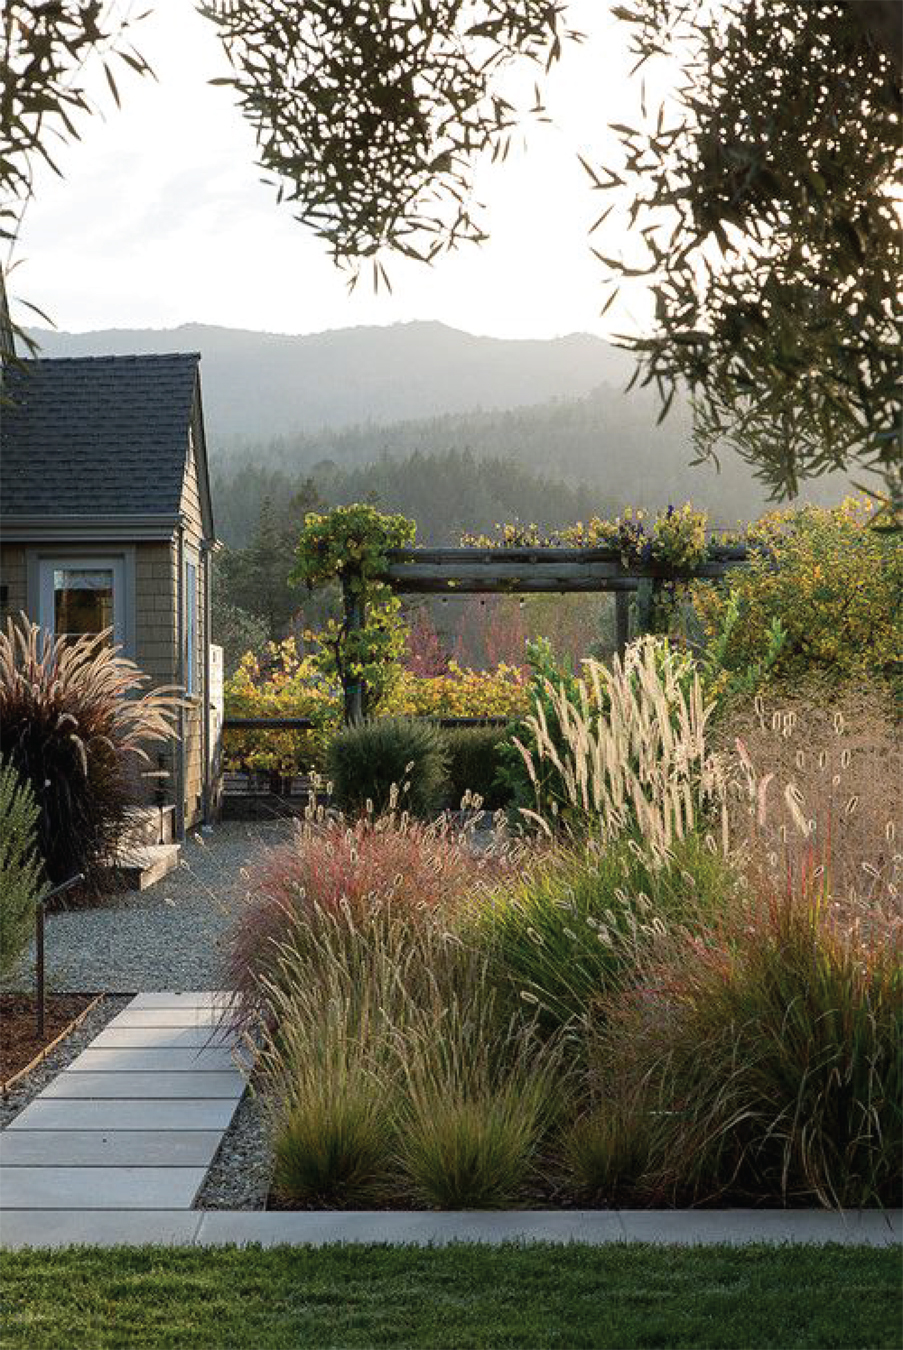 Statement Gardens: tall grassy landscapes with concrete paver walkways | Akin Design Studio Blog